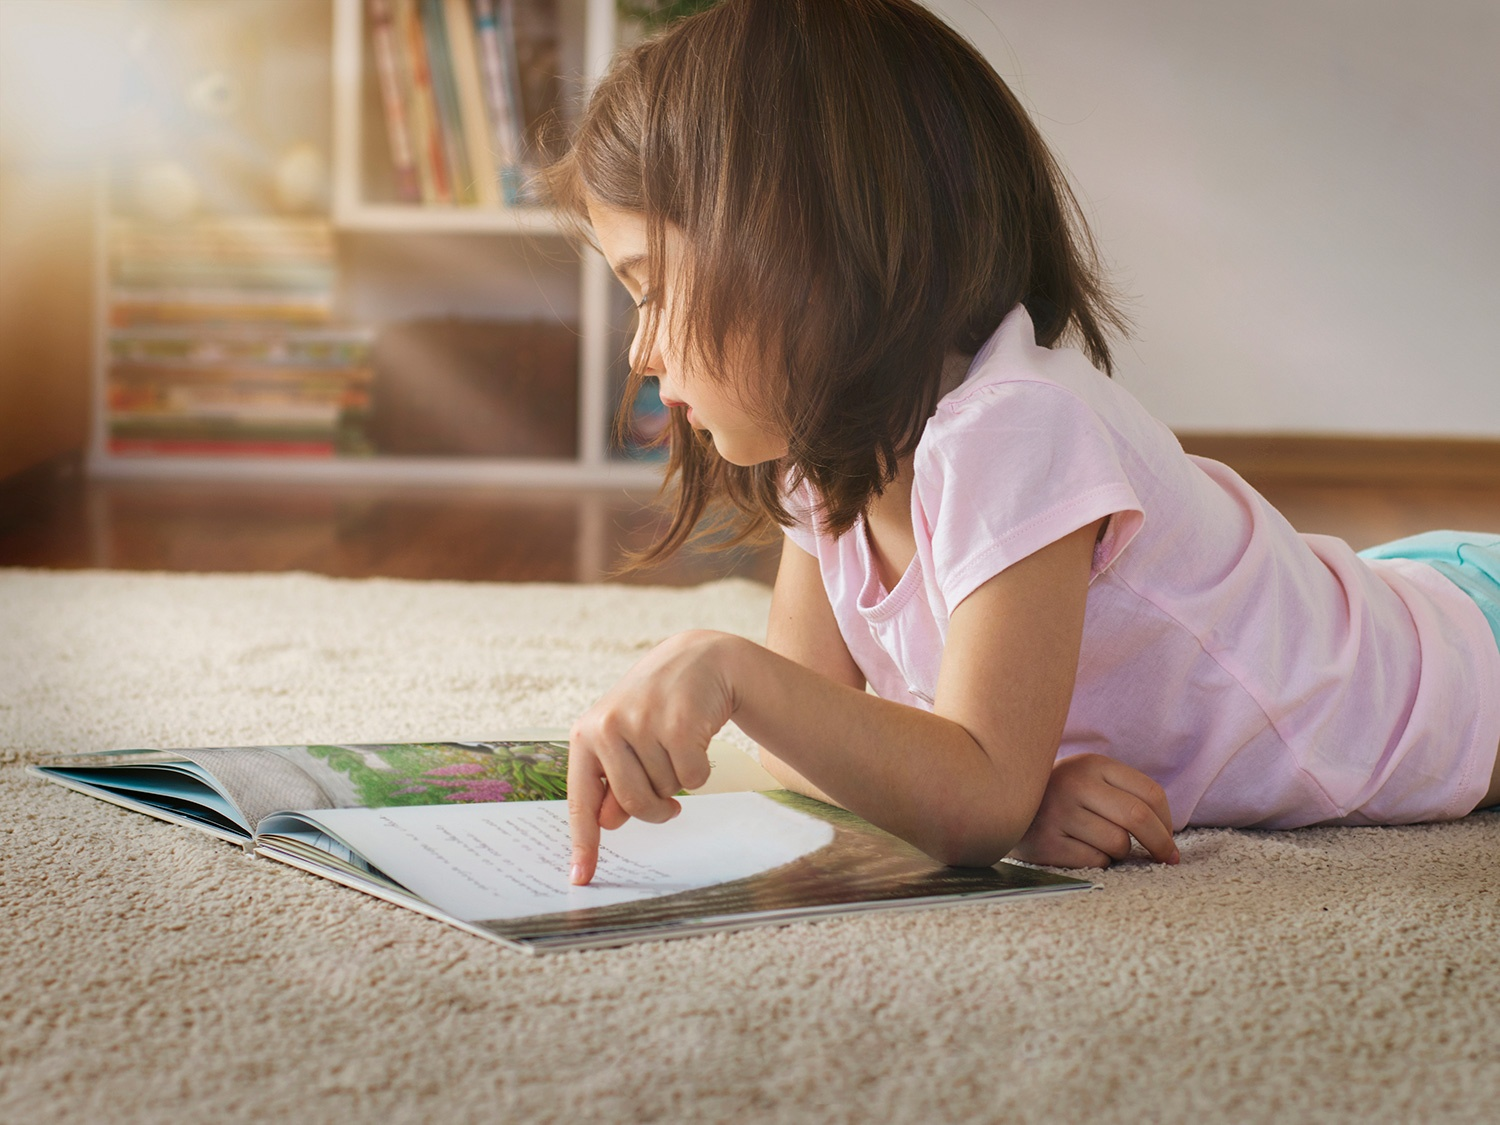 2021 Booklist Recommendations: The Best Books to Read With Your Kids